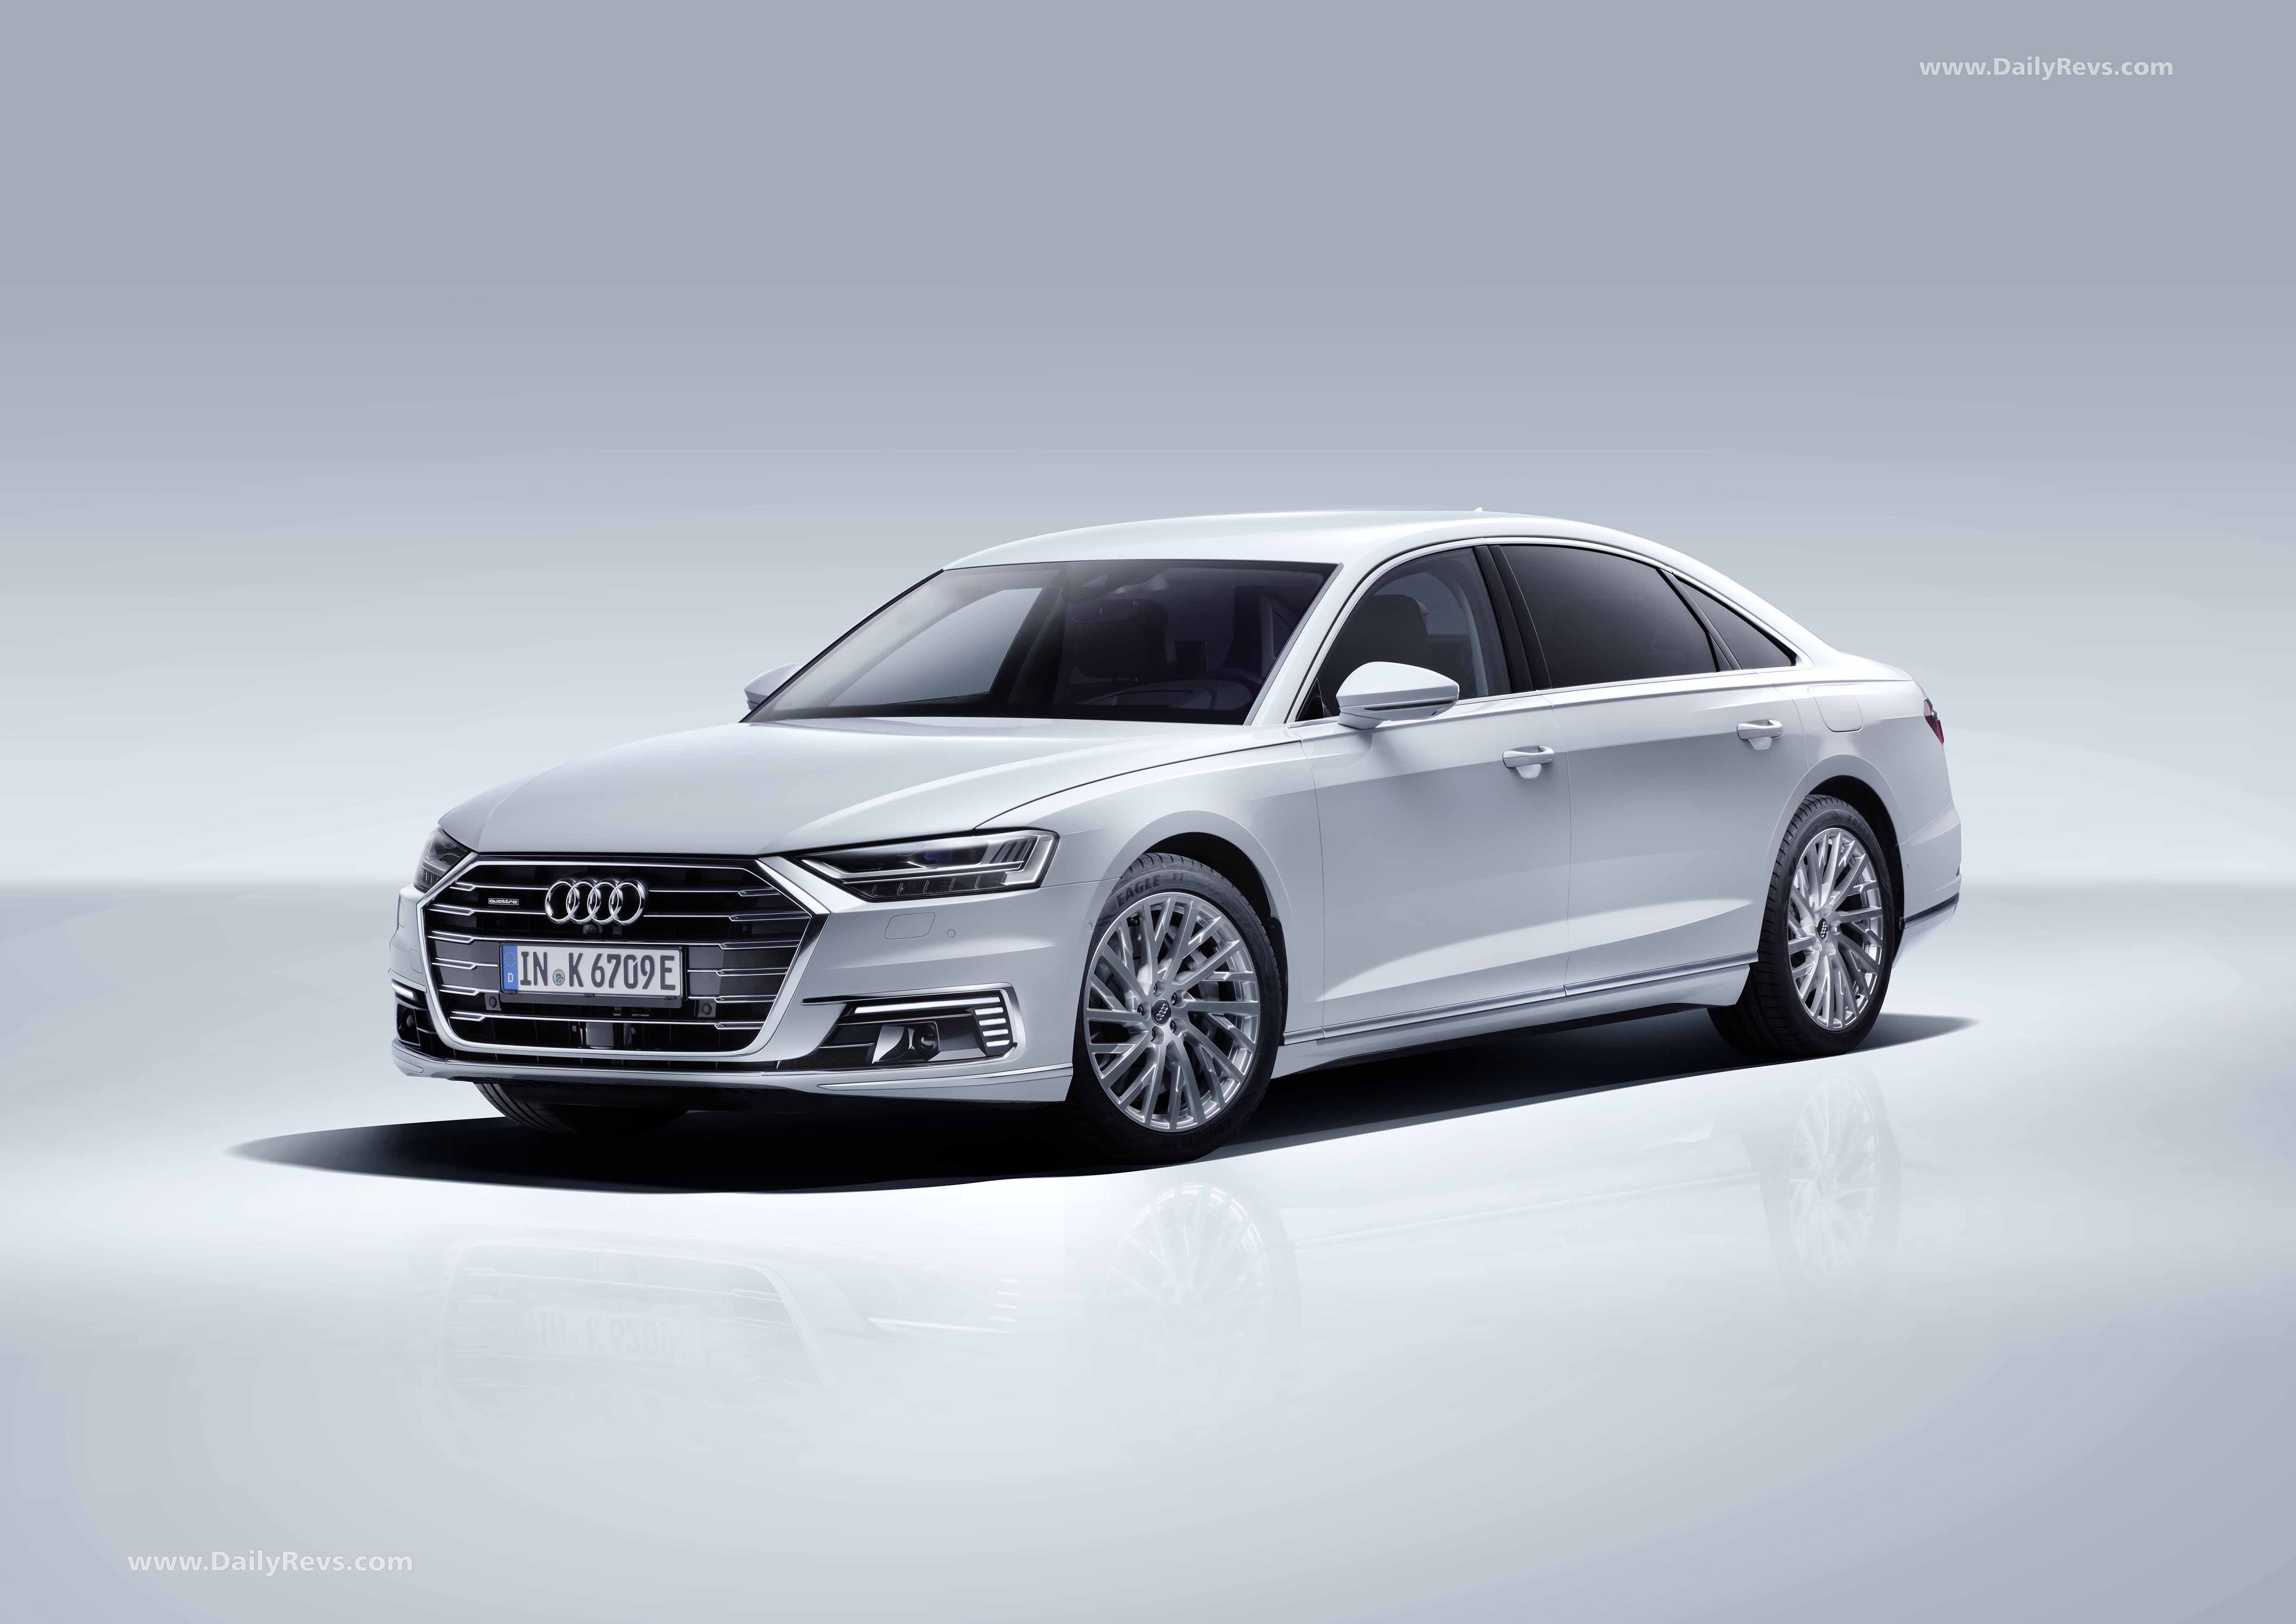 2020 Audi A8 L - Pictures, Images, Photos & Wallpapers ...